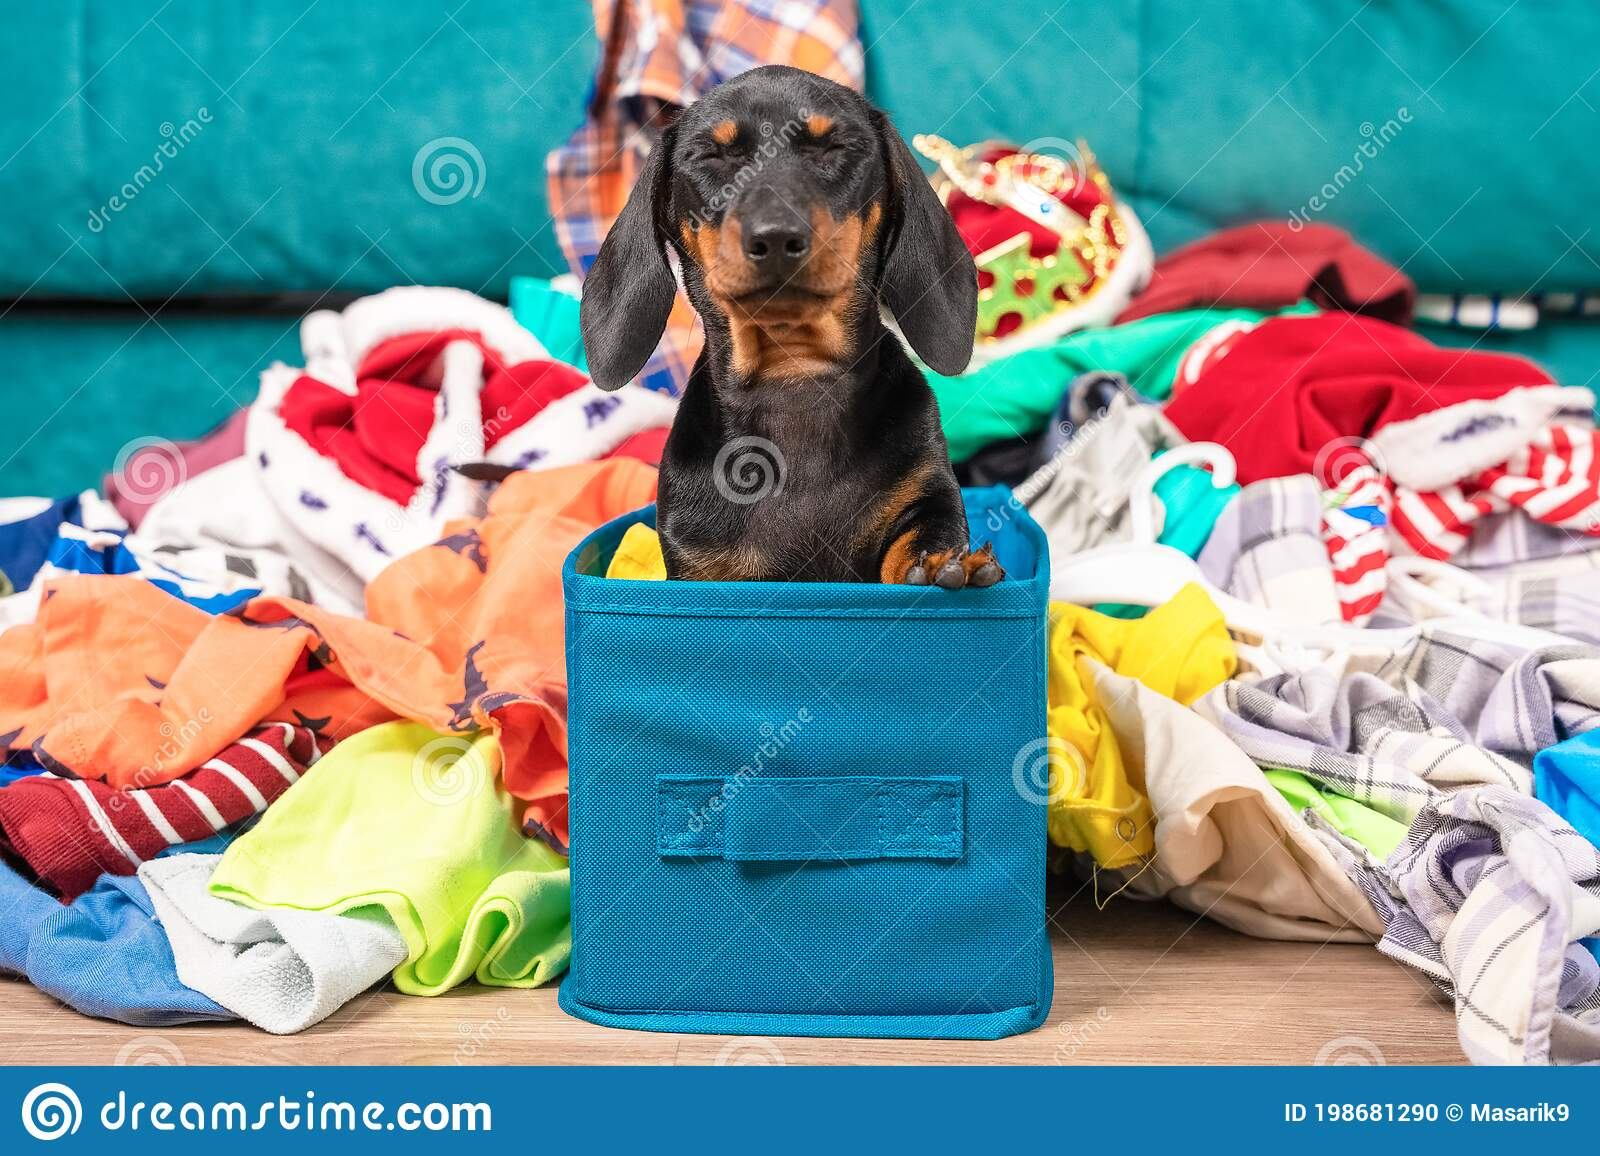 Funny Dachshund Puppy Sits In Cloth Storage Box Screwing Up Eyes In Fear Clothes Scattered Around Naughty Playful Baby Stock Photo Image Of Happy Breed 198681290